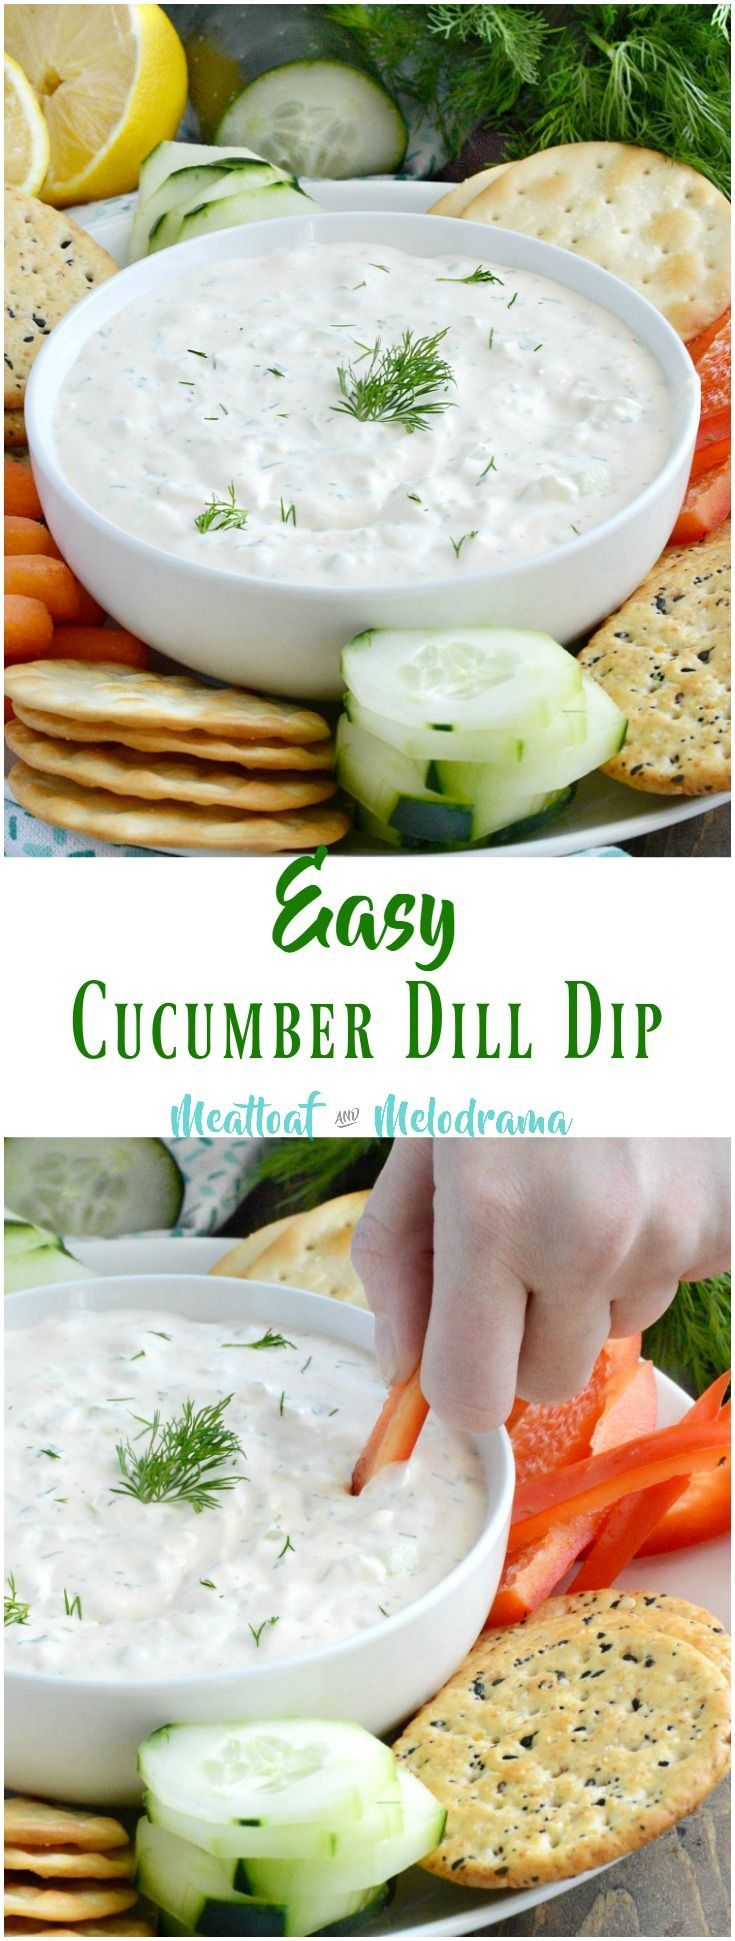 Easy Cucumber Dill Dip - A classic recipe for a cool and creamy dip made modern with a touch of sriracha sauce for extra kick. Perfect for spring and summer gatherings! from Meatloaf and Melodrama